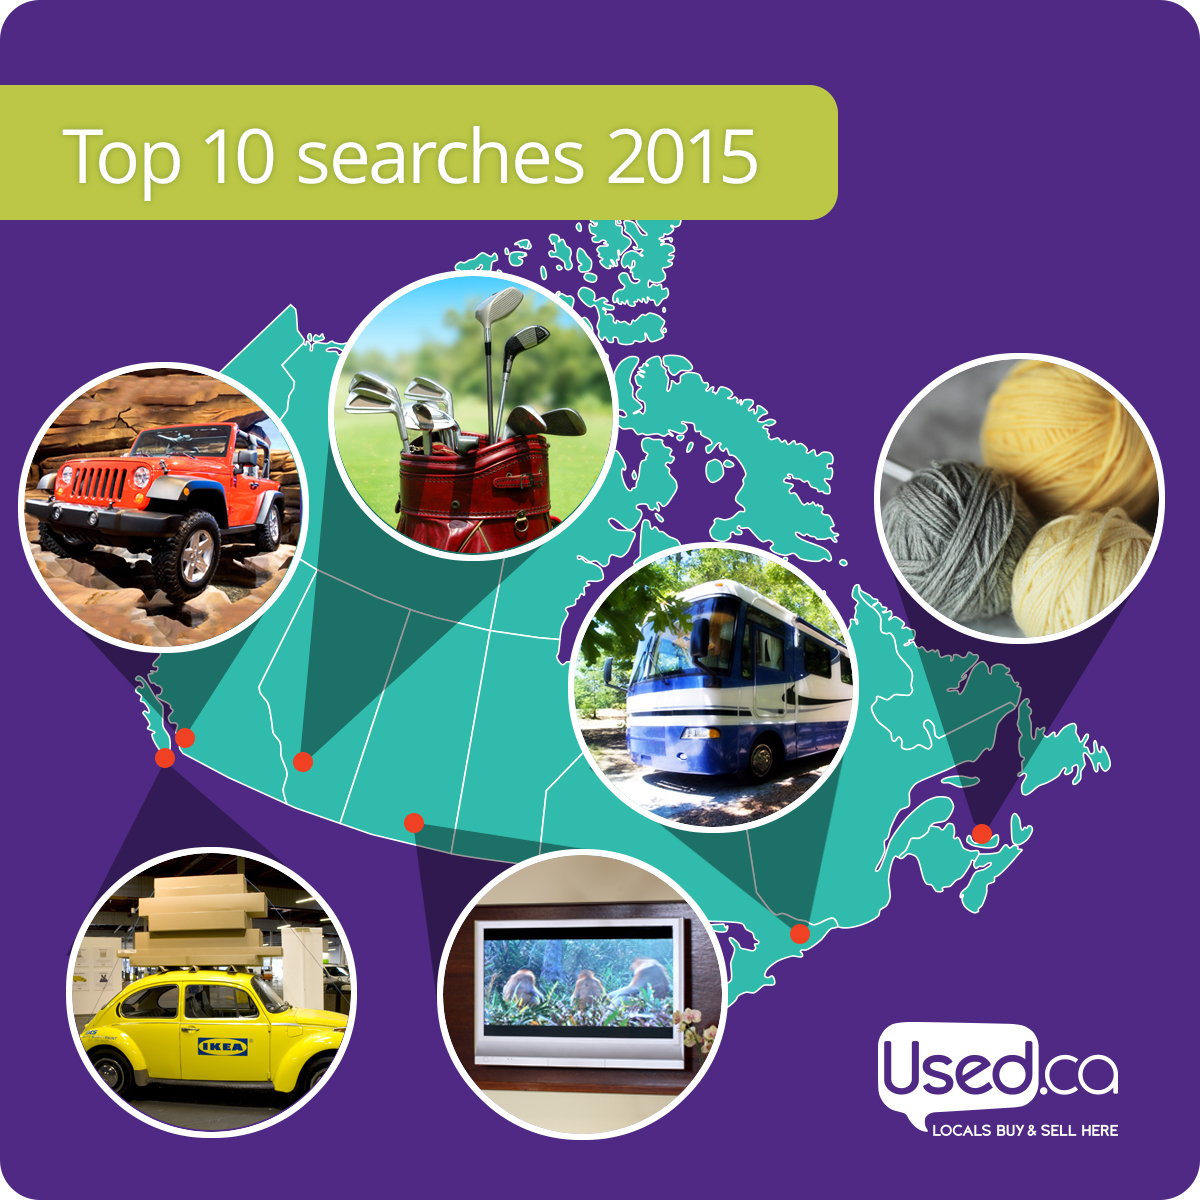 Used Kitchen Cabinets York Region Used Ca The Most Popular Used Searches Of 2015 Used Ca